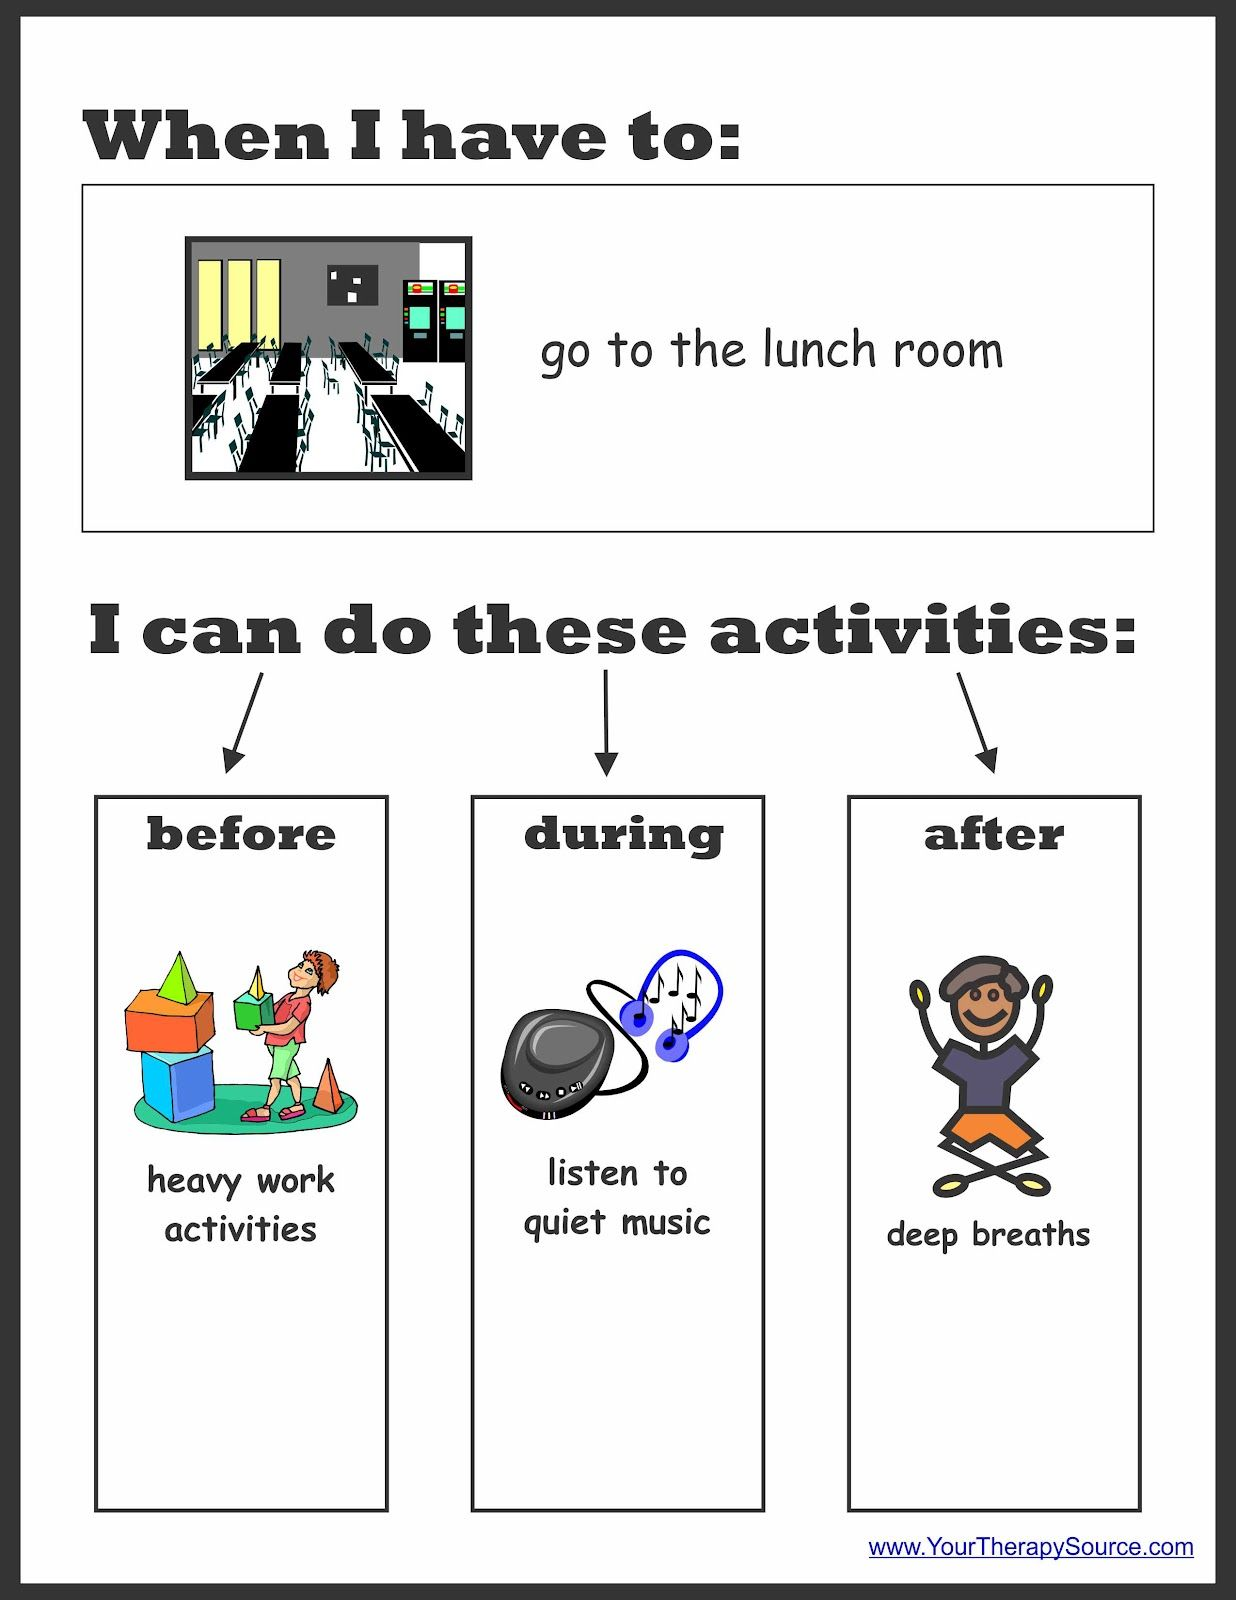 Sensory Preferences Worksheet To Determine Sensoryt Activities For Different Situations